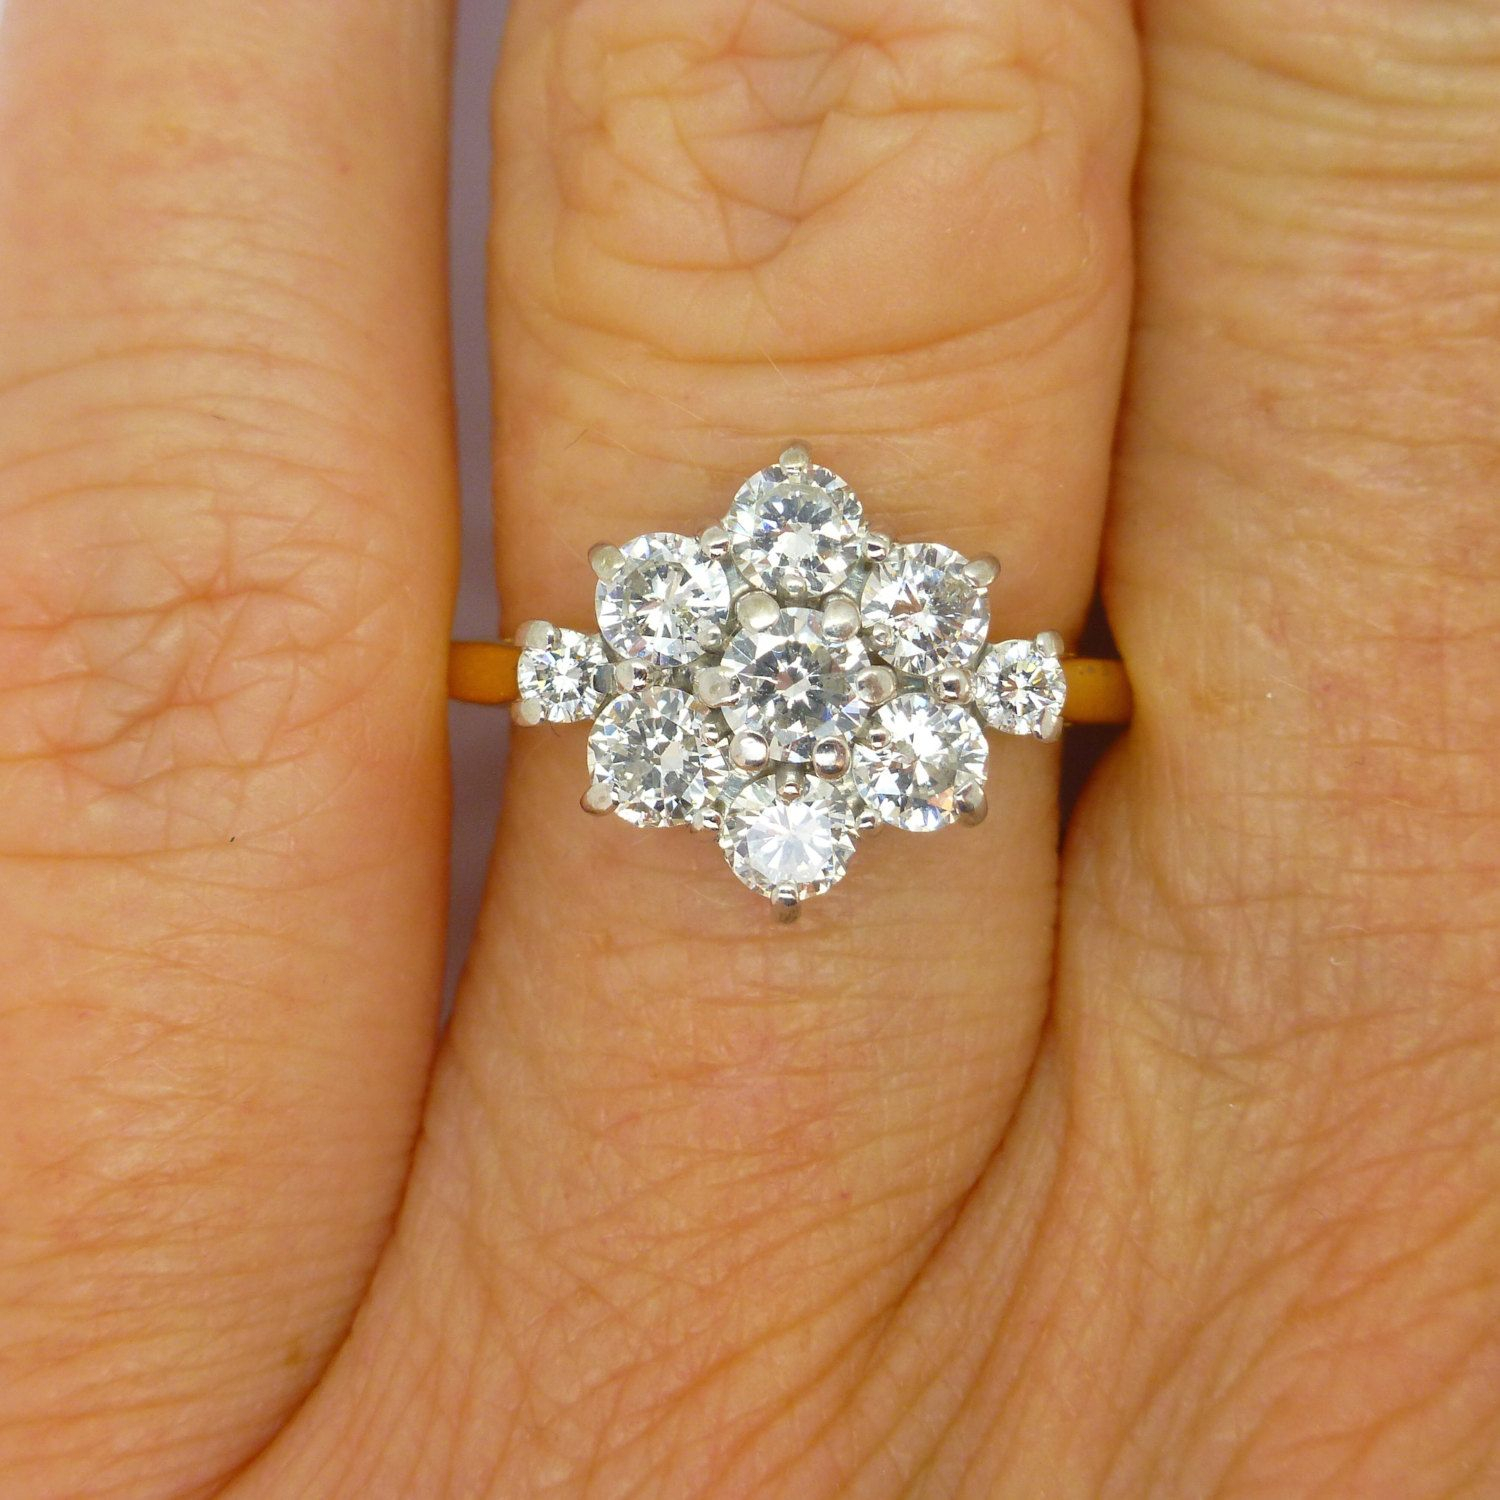 Vintage Diamond Cluster Engagement Ring 18Ct 18K English Estate With Regard To Most Popular Classic Daisy Flower Band Rings (View 25 of 25)